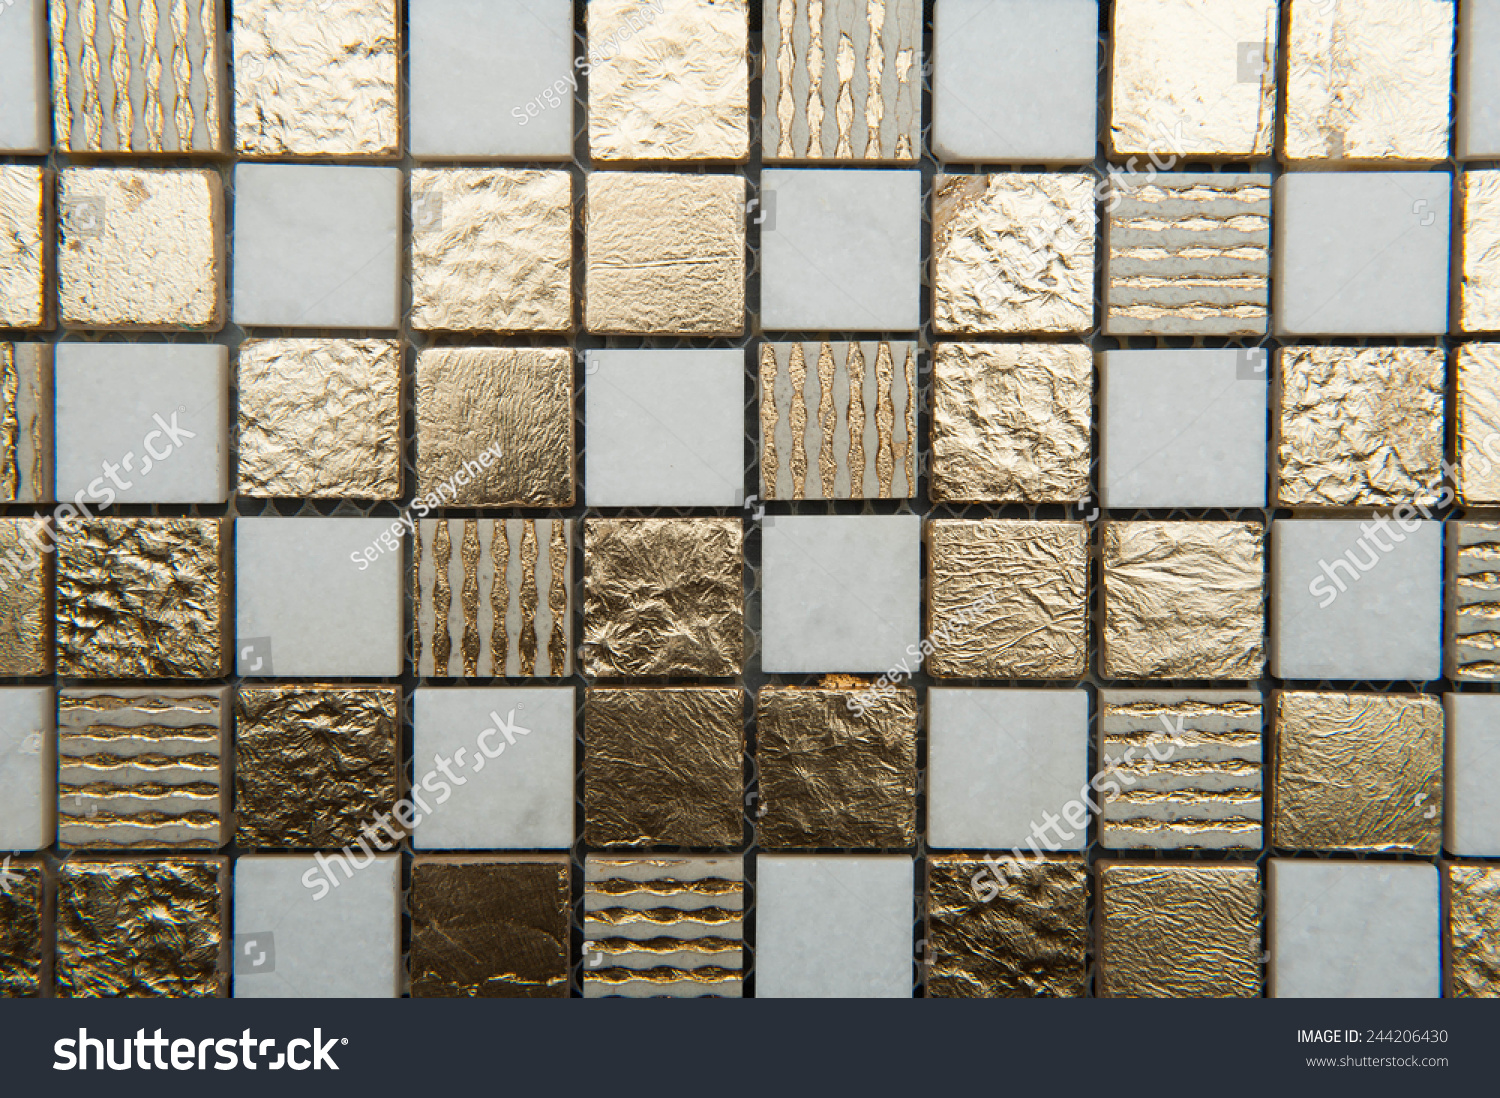 Texture Mosaic Tiles Texture Mosaic Bathroom Stock Photo 244206430 Shutterstock